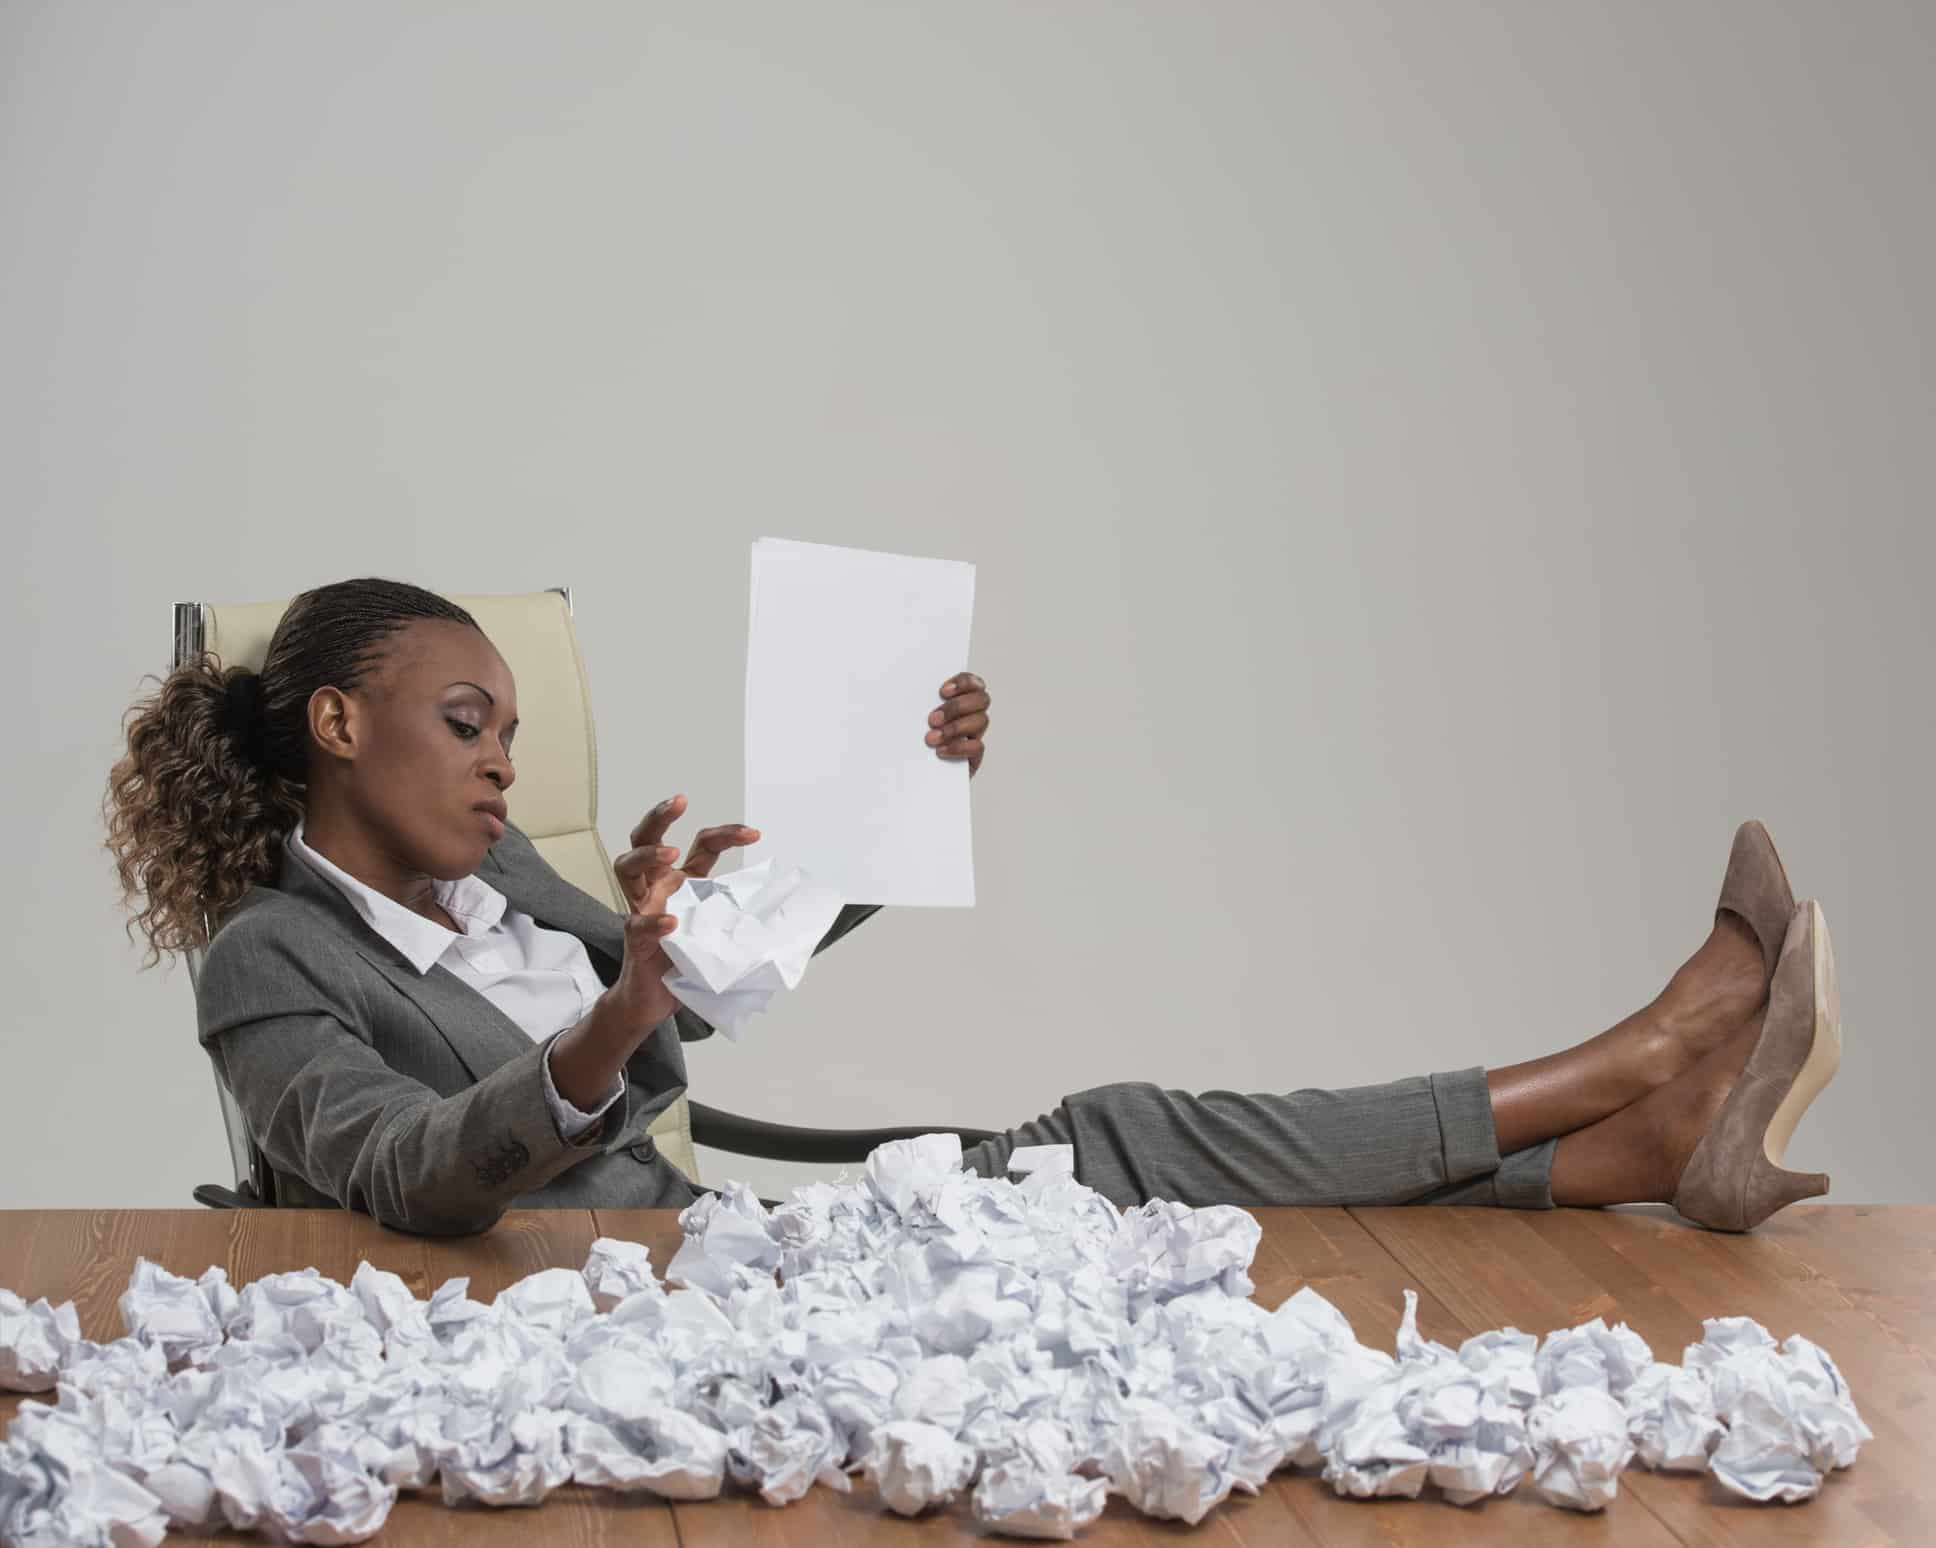 Lying On Resume Legal Consequences Weird Resume Mistakes And How To Avoid Making Them Debt